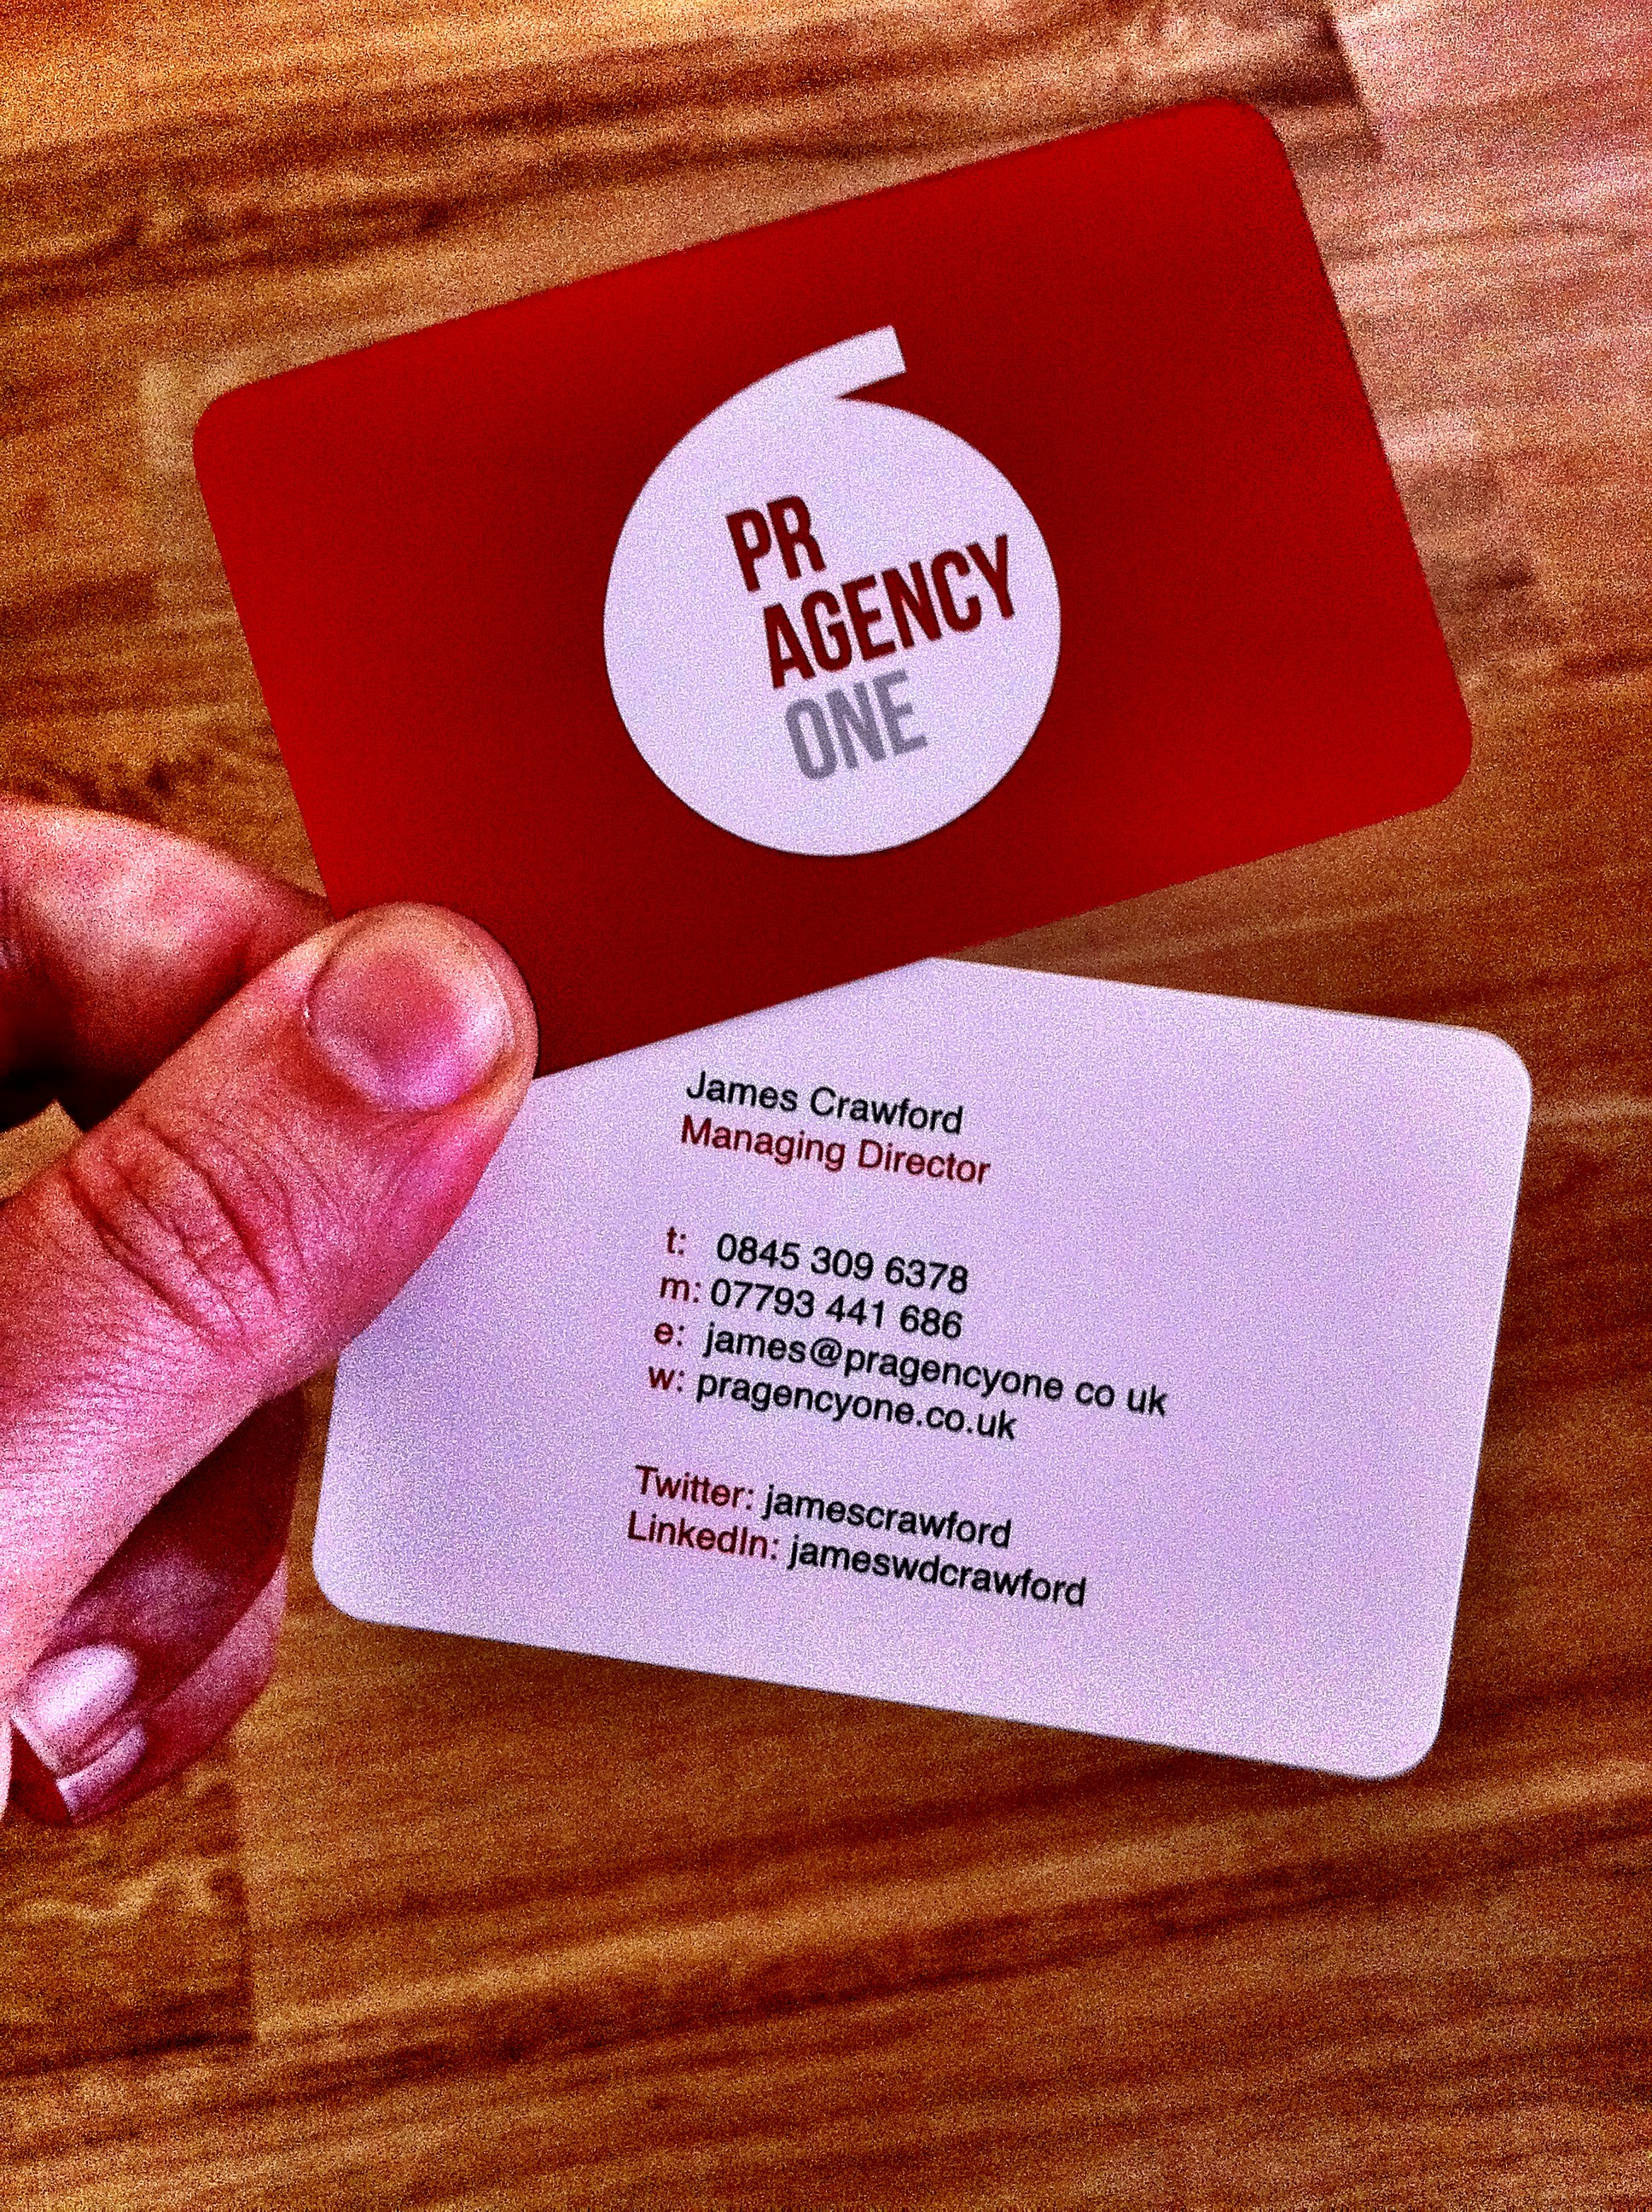 A Manchester PR Agency and its Identity - PR Agency One